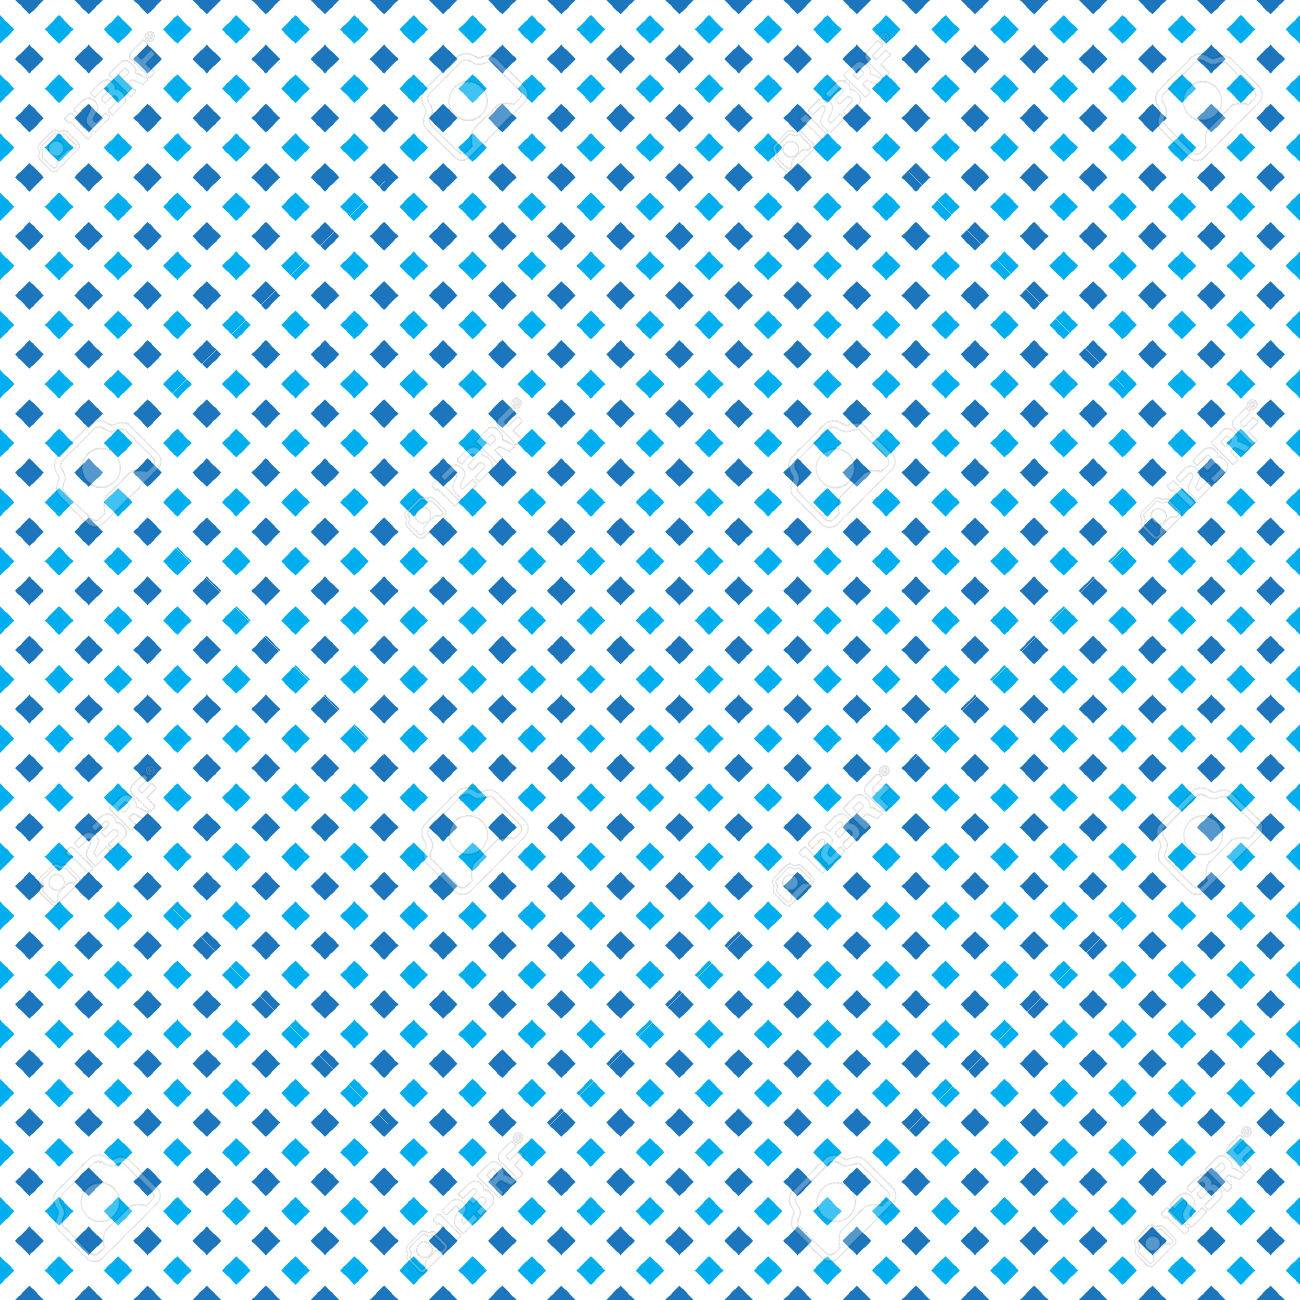 Seamless Square boxes pattern background  Scaled at any size